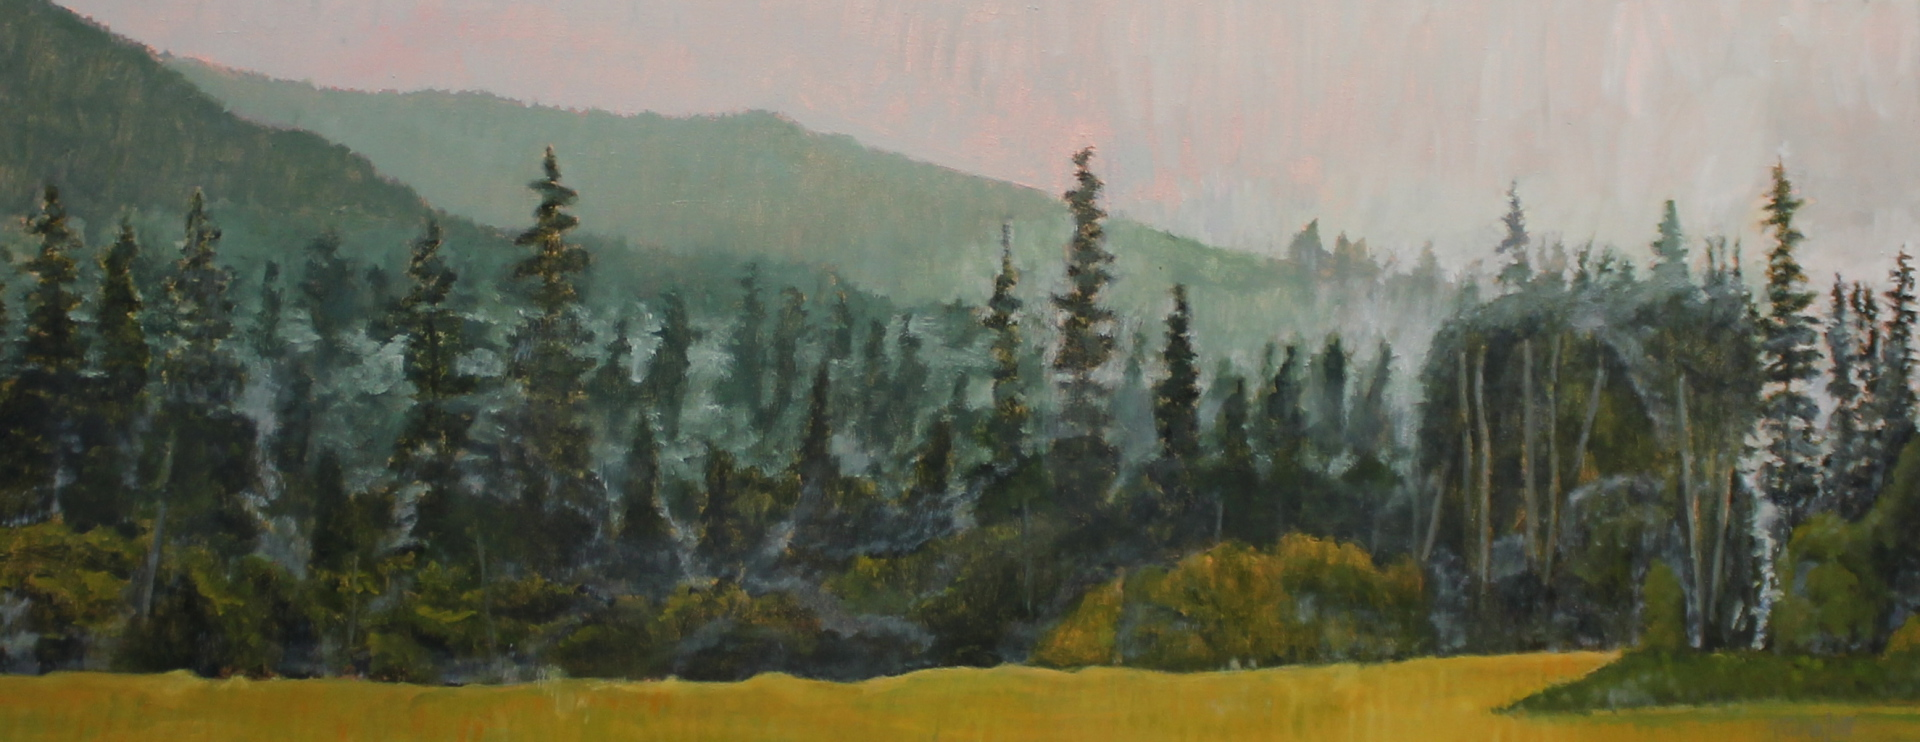 UNTITLED - 24X60 - OIL ON CANVAS - 2015